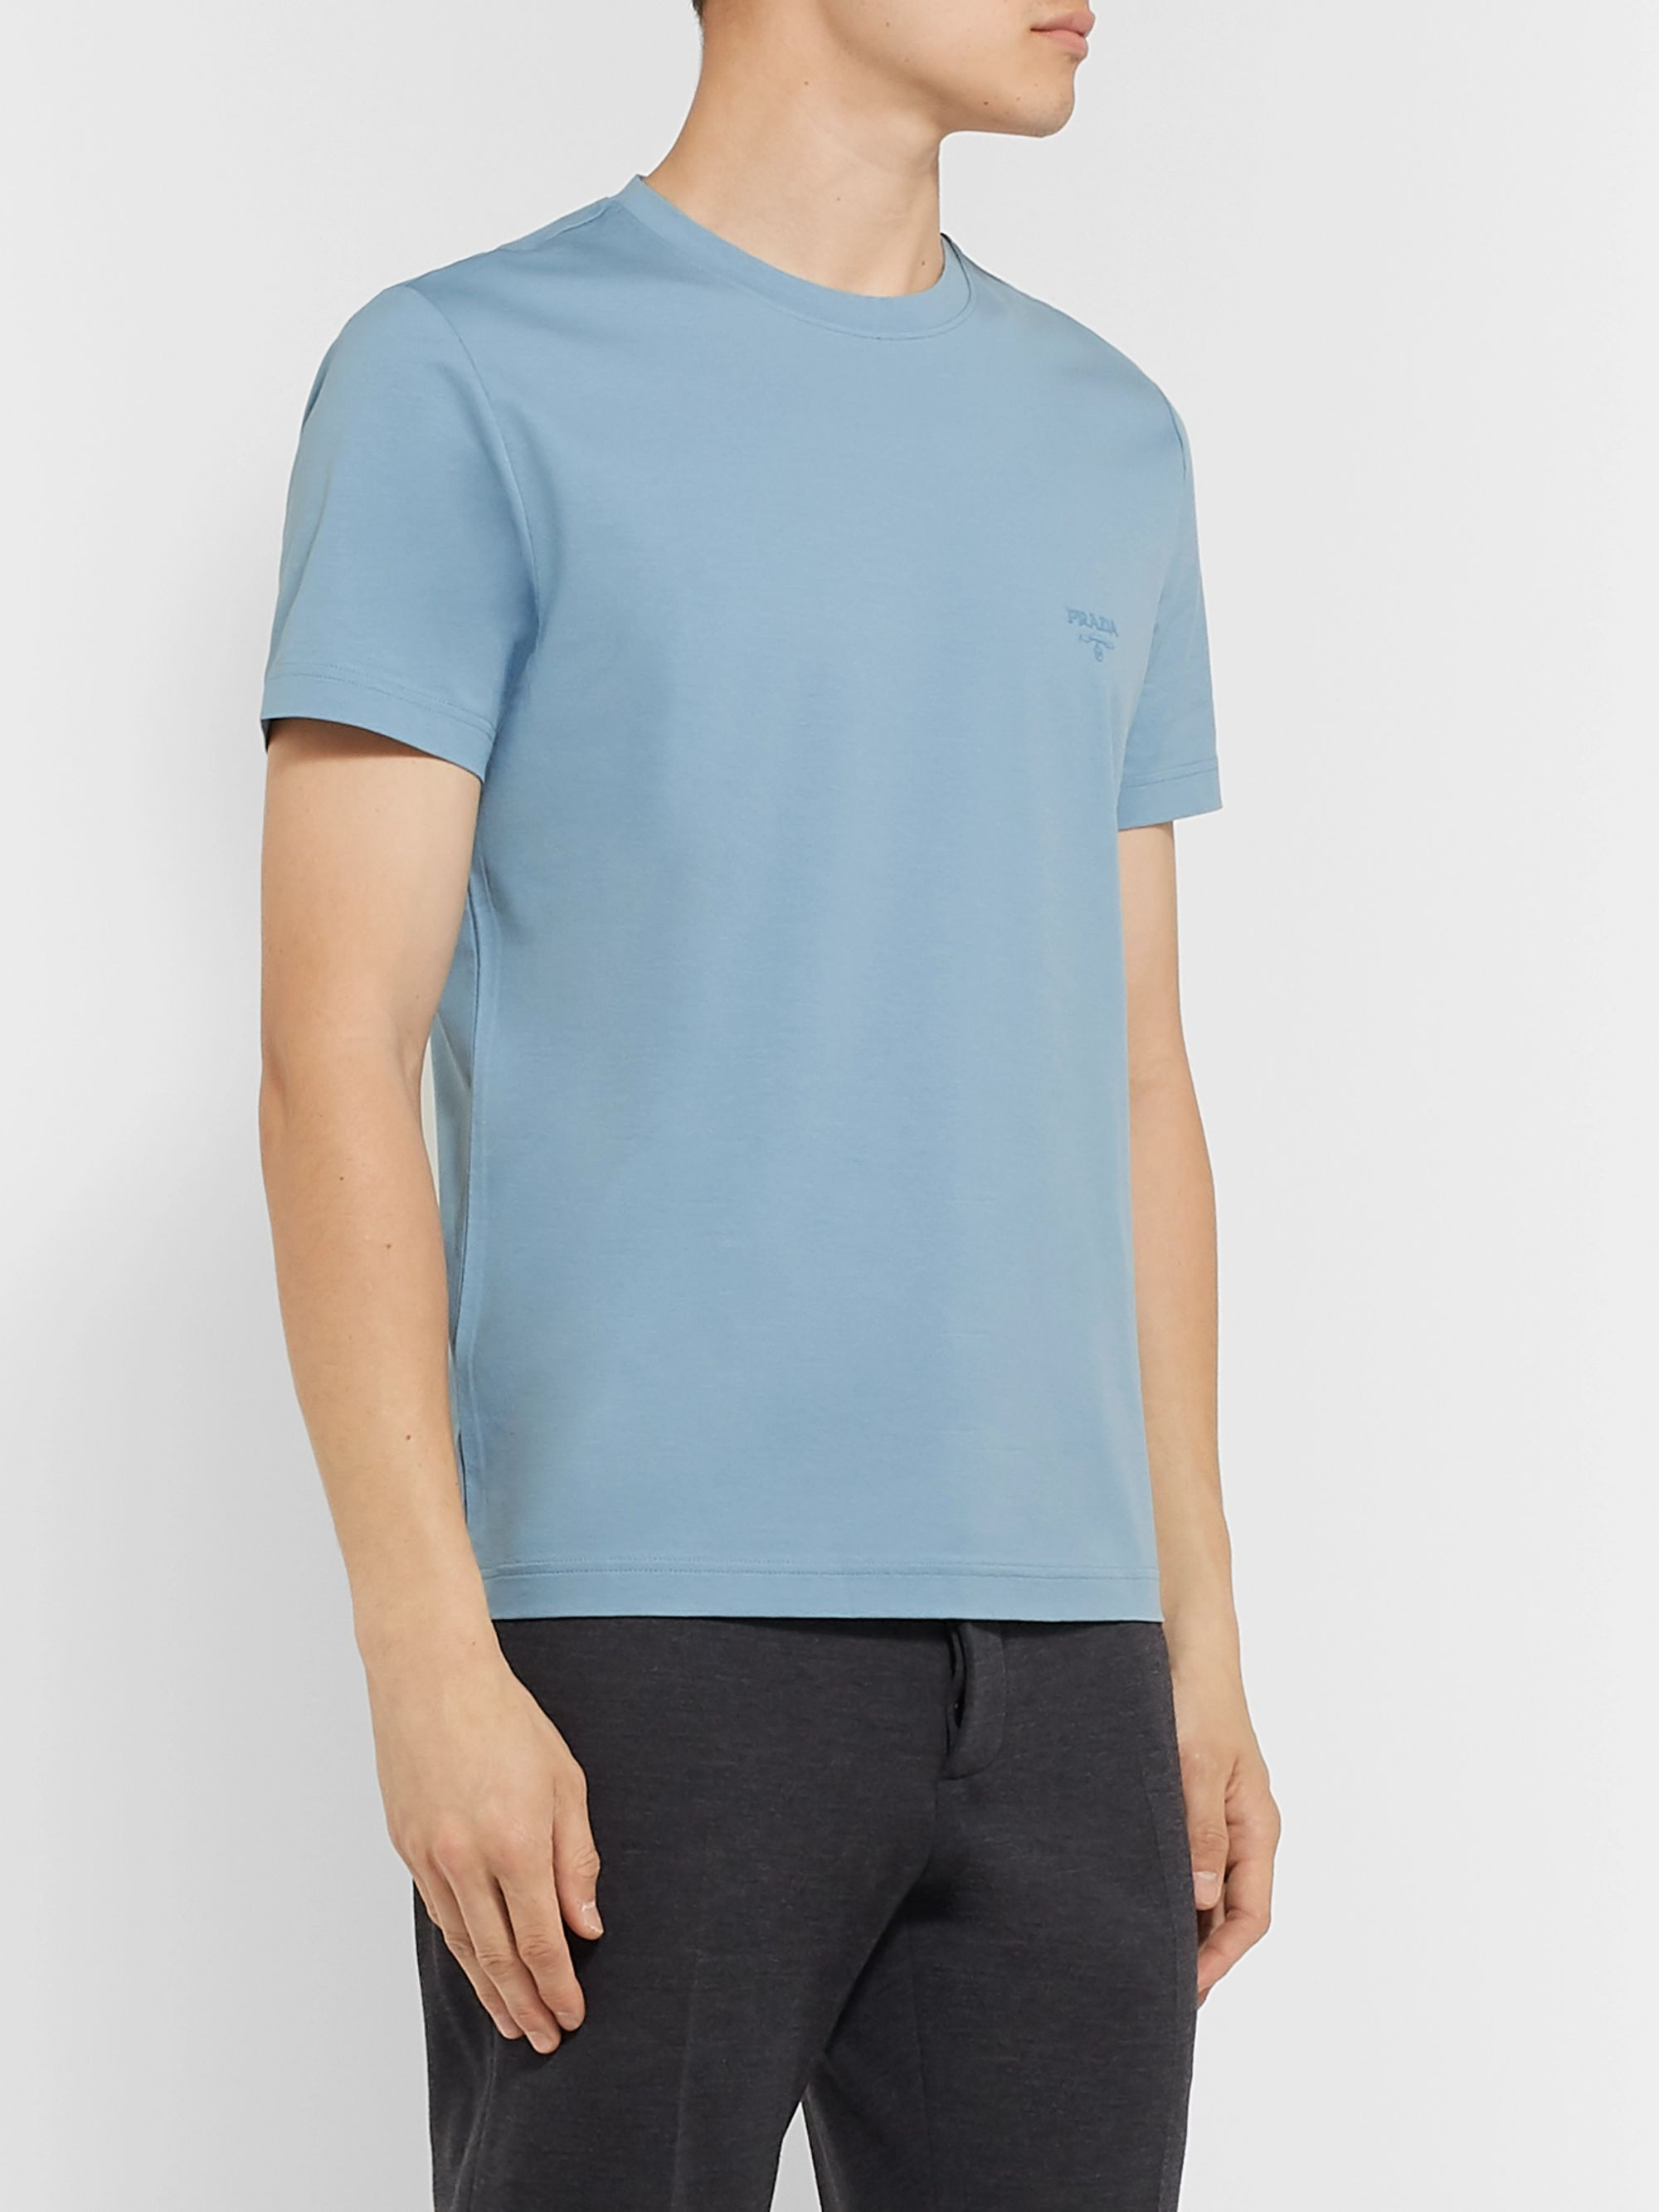 Prada Slim-Fit Logo-Embroidered Stretch-Cotton Jersey T-Shirt